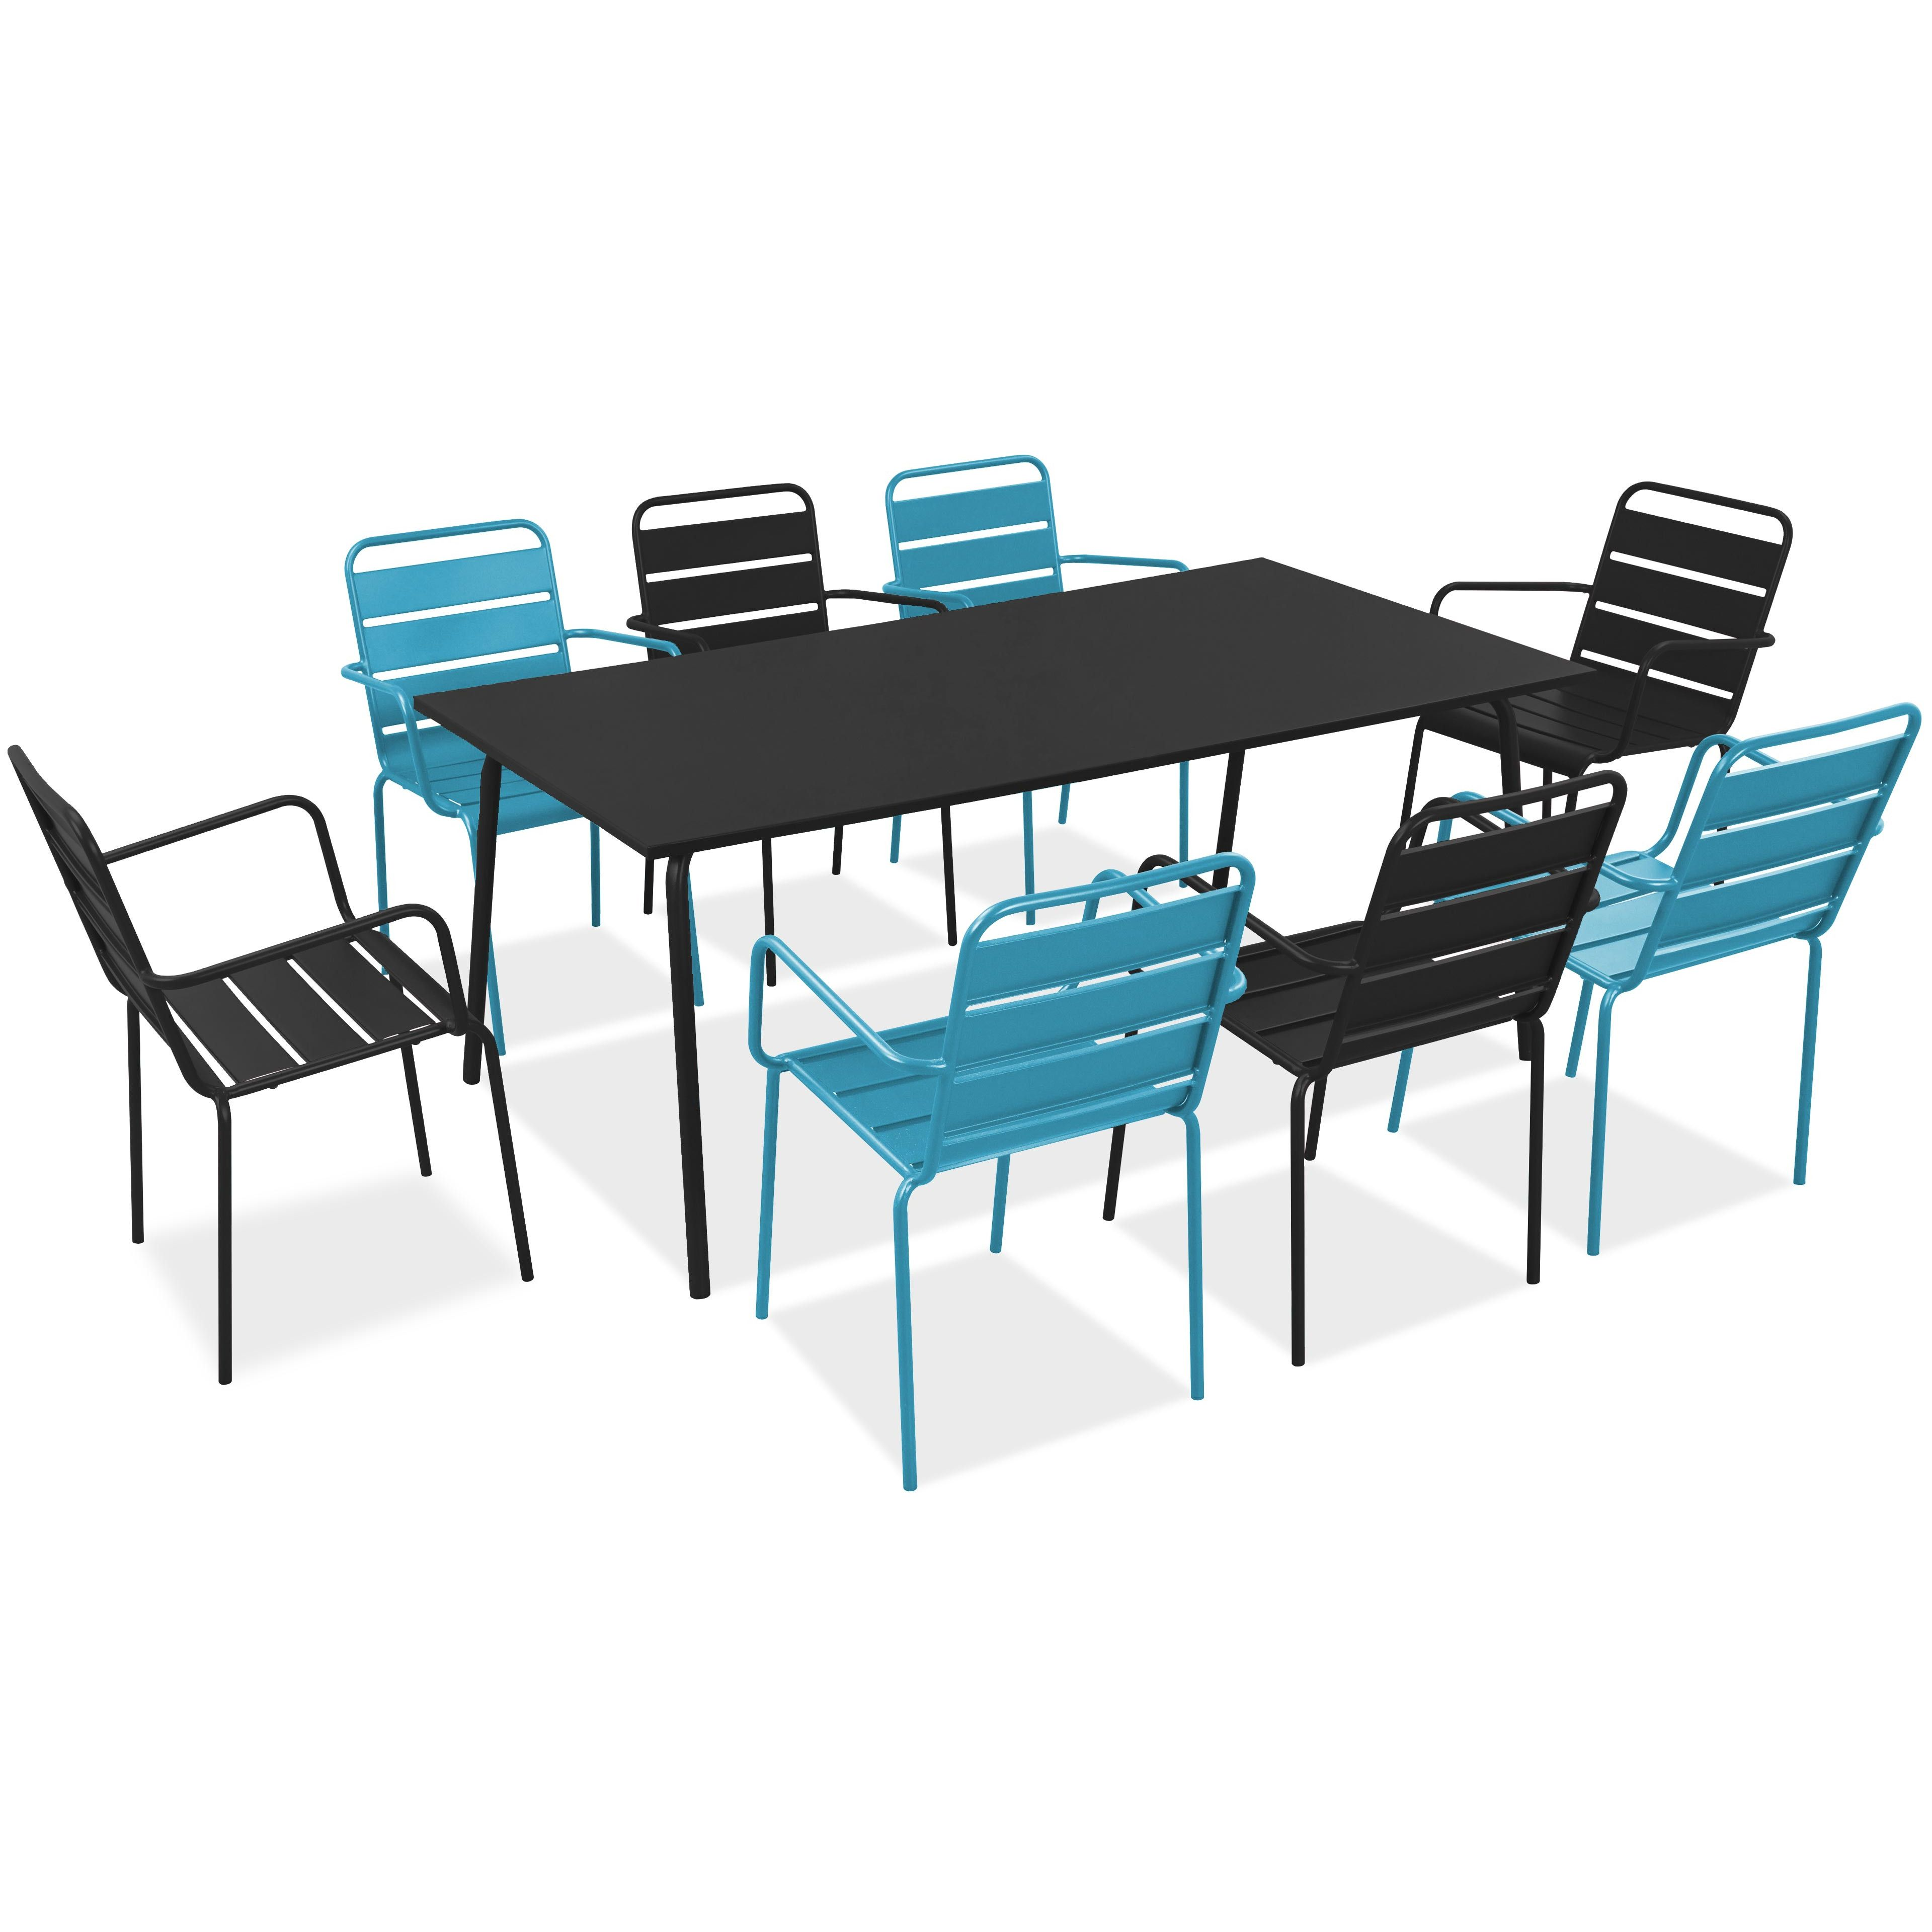 Table De Jardin - 12.paddlemania.co •